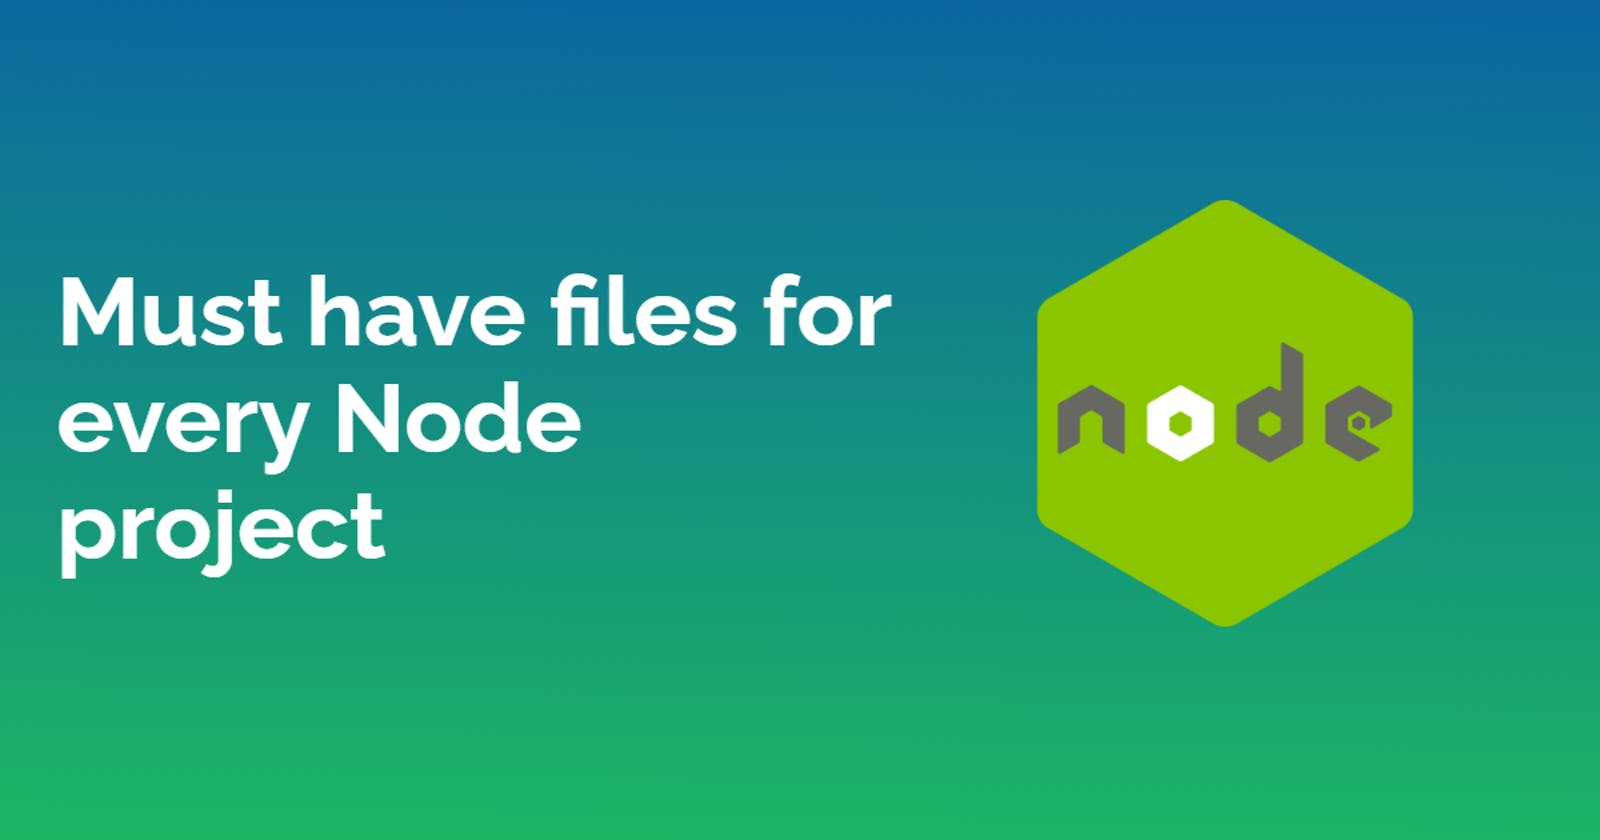 8 Must have files for every Node project